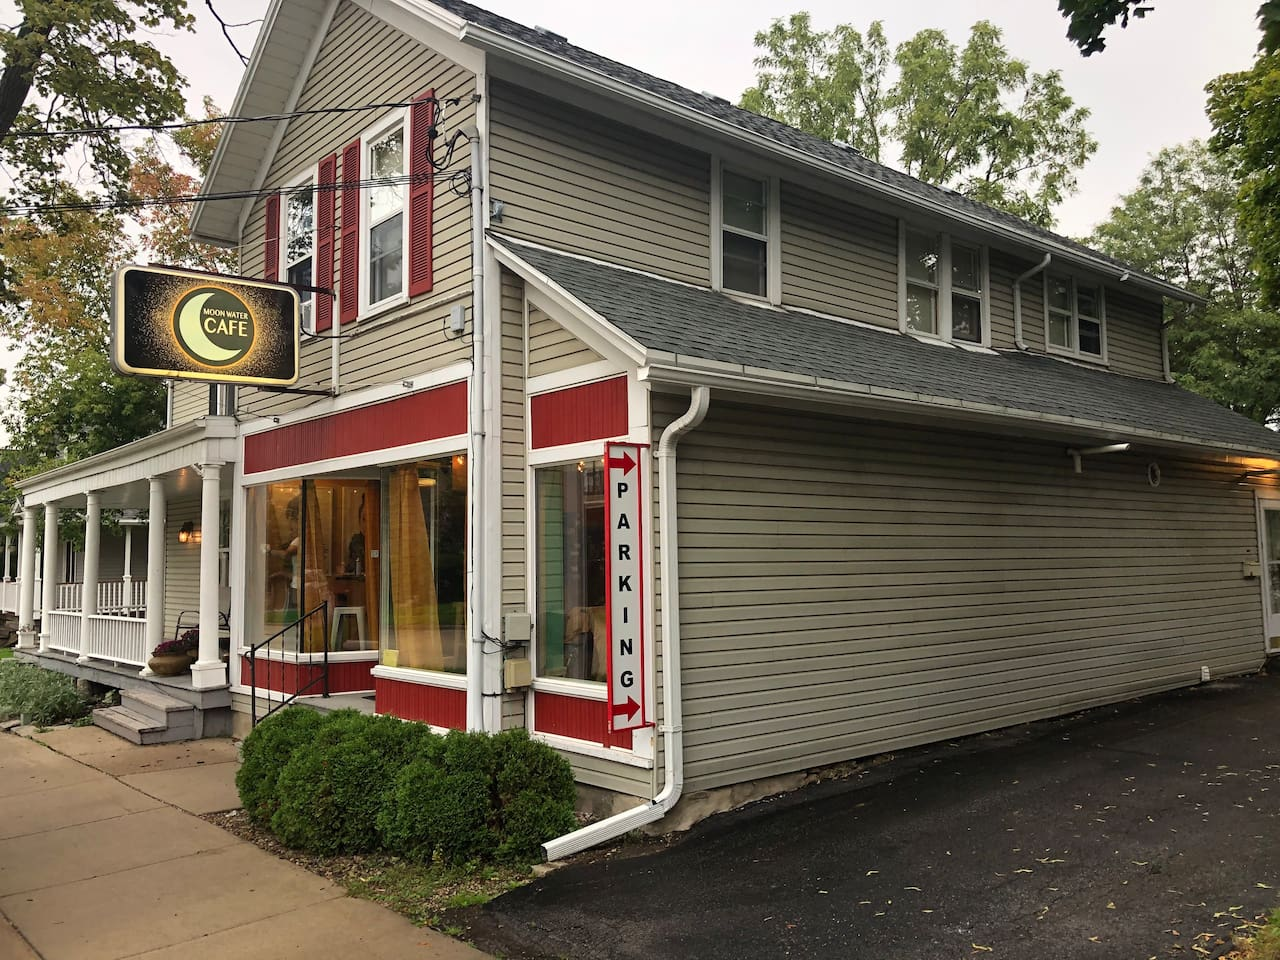 This apartment is located upstairs from a neighborhood cafe. The cafe is open Tuesday - Saturday from 8:30am to 6:00 pm with slightly extended hours on Fridays and Saturdays.